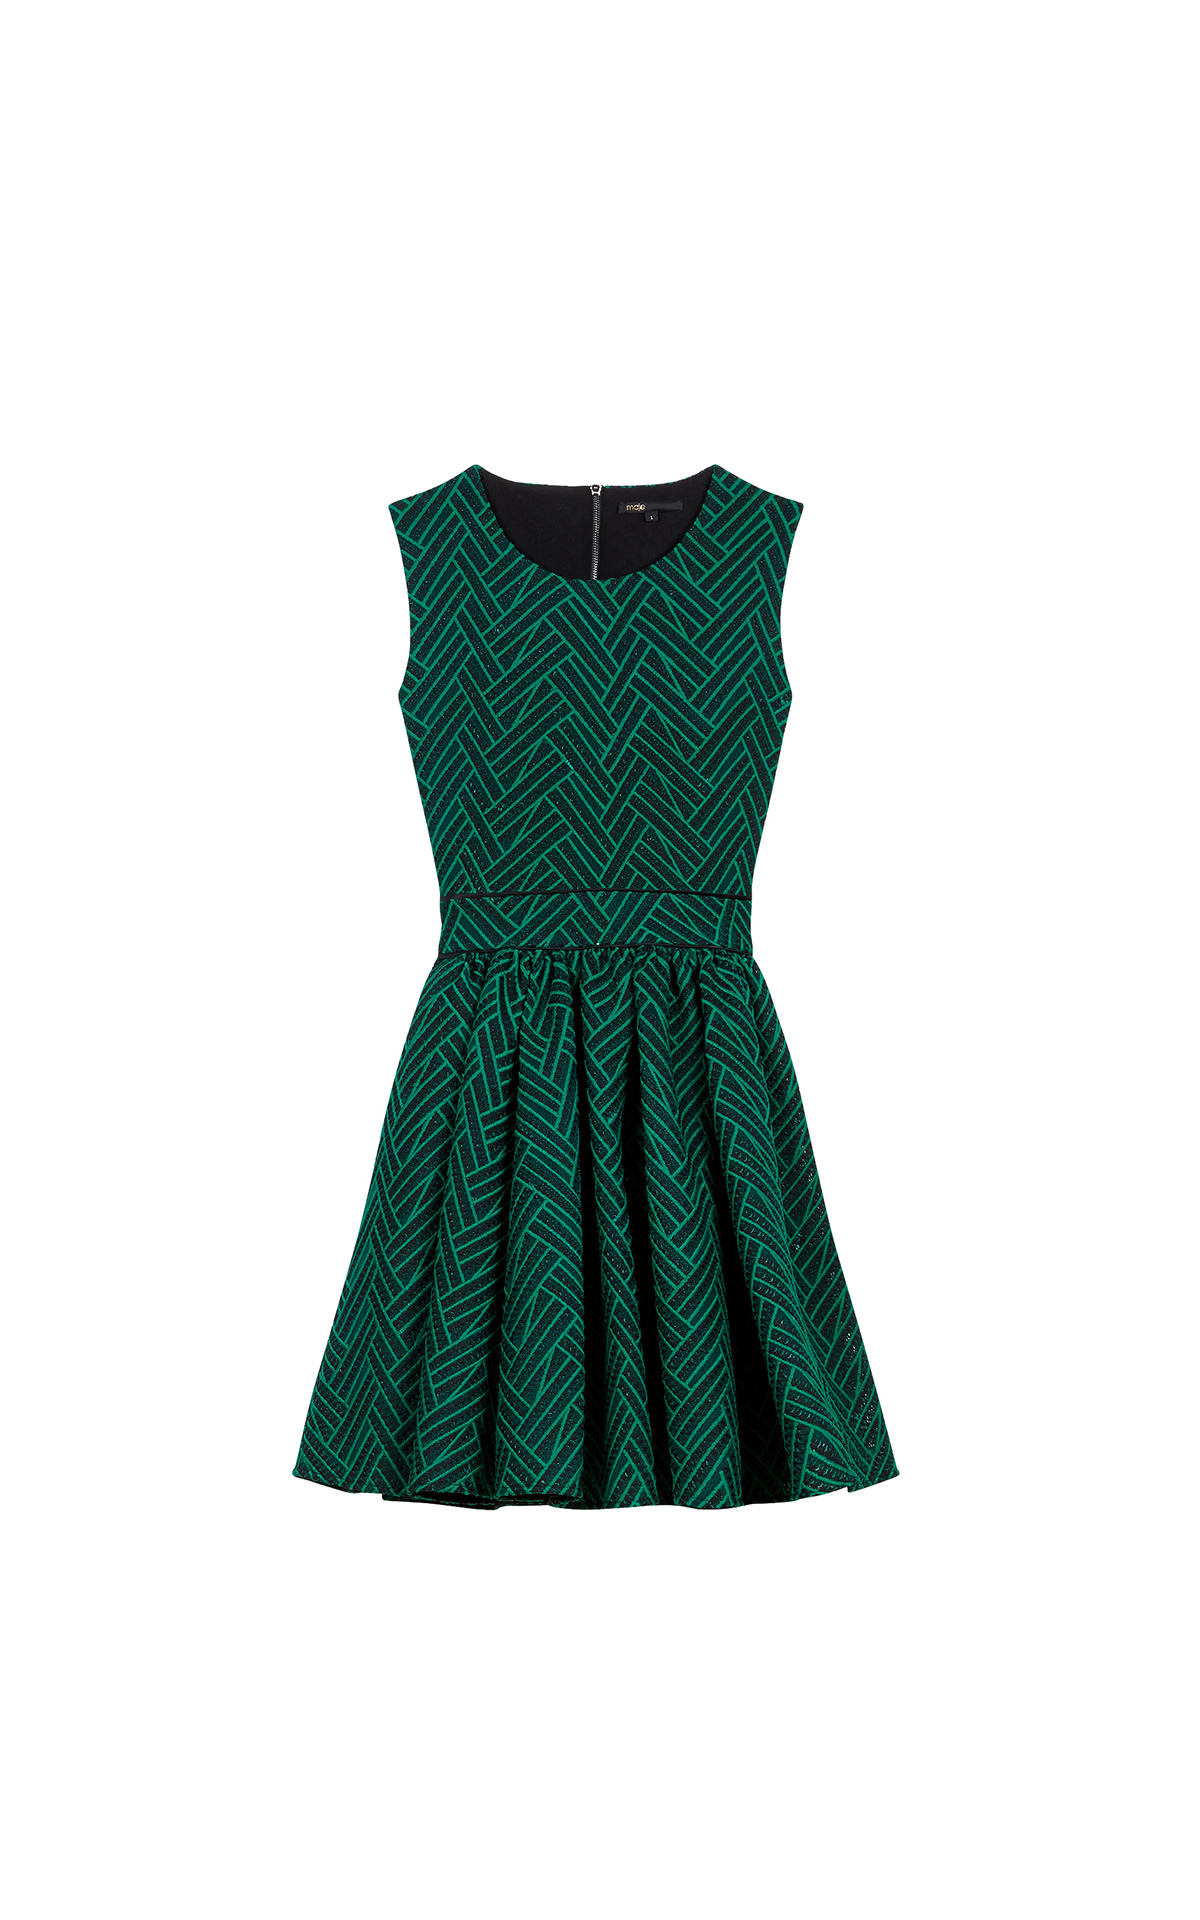 Maje Green Dress at The Bicester Village Shopping Collection